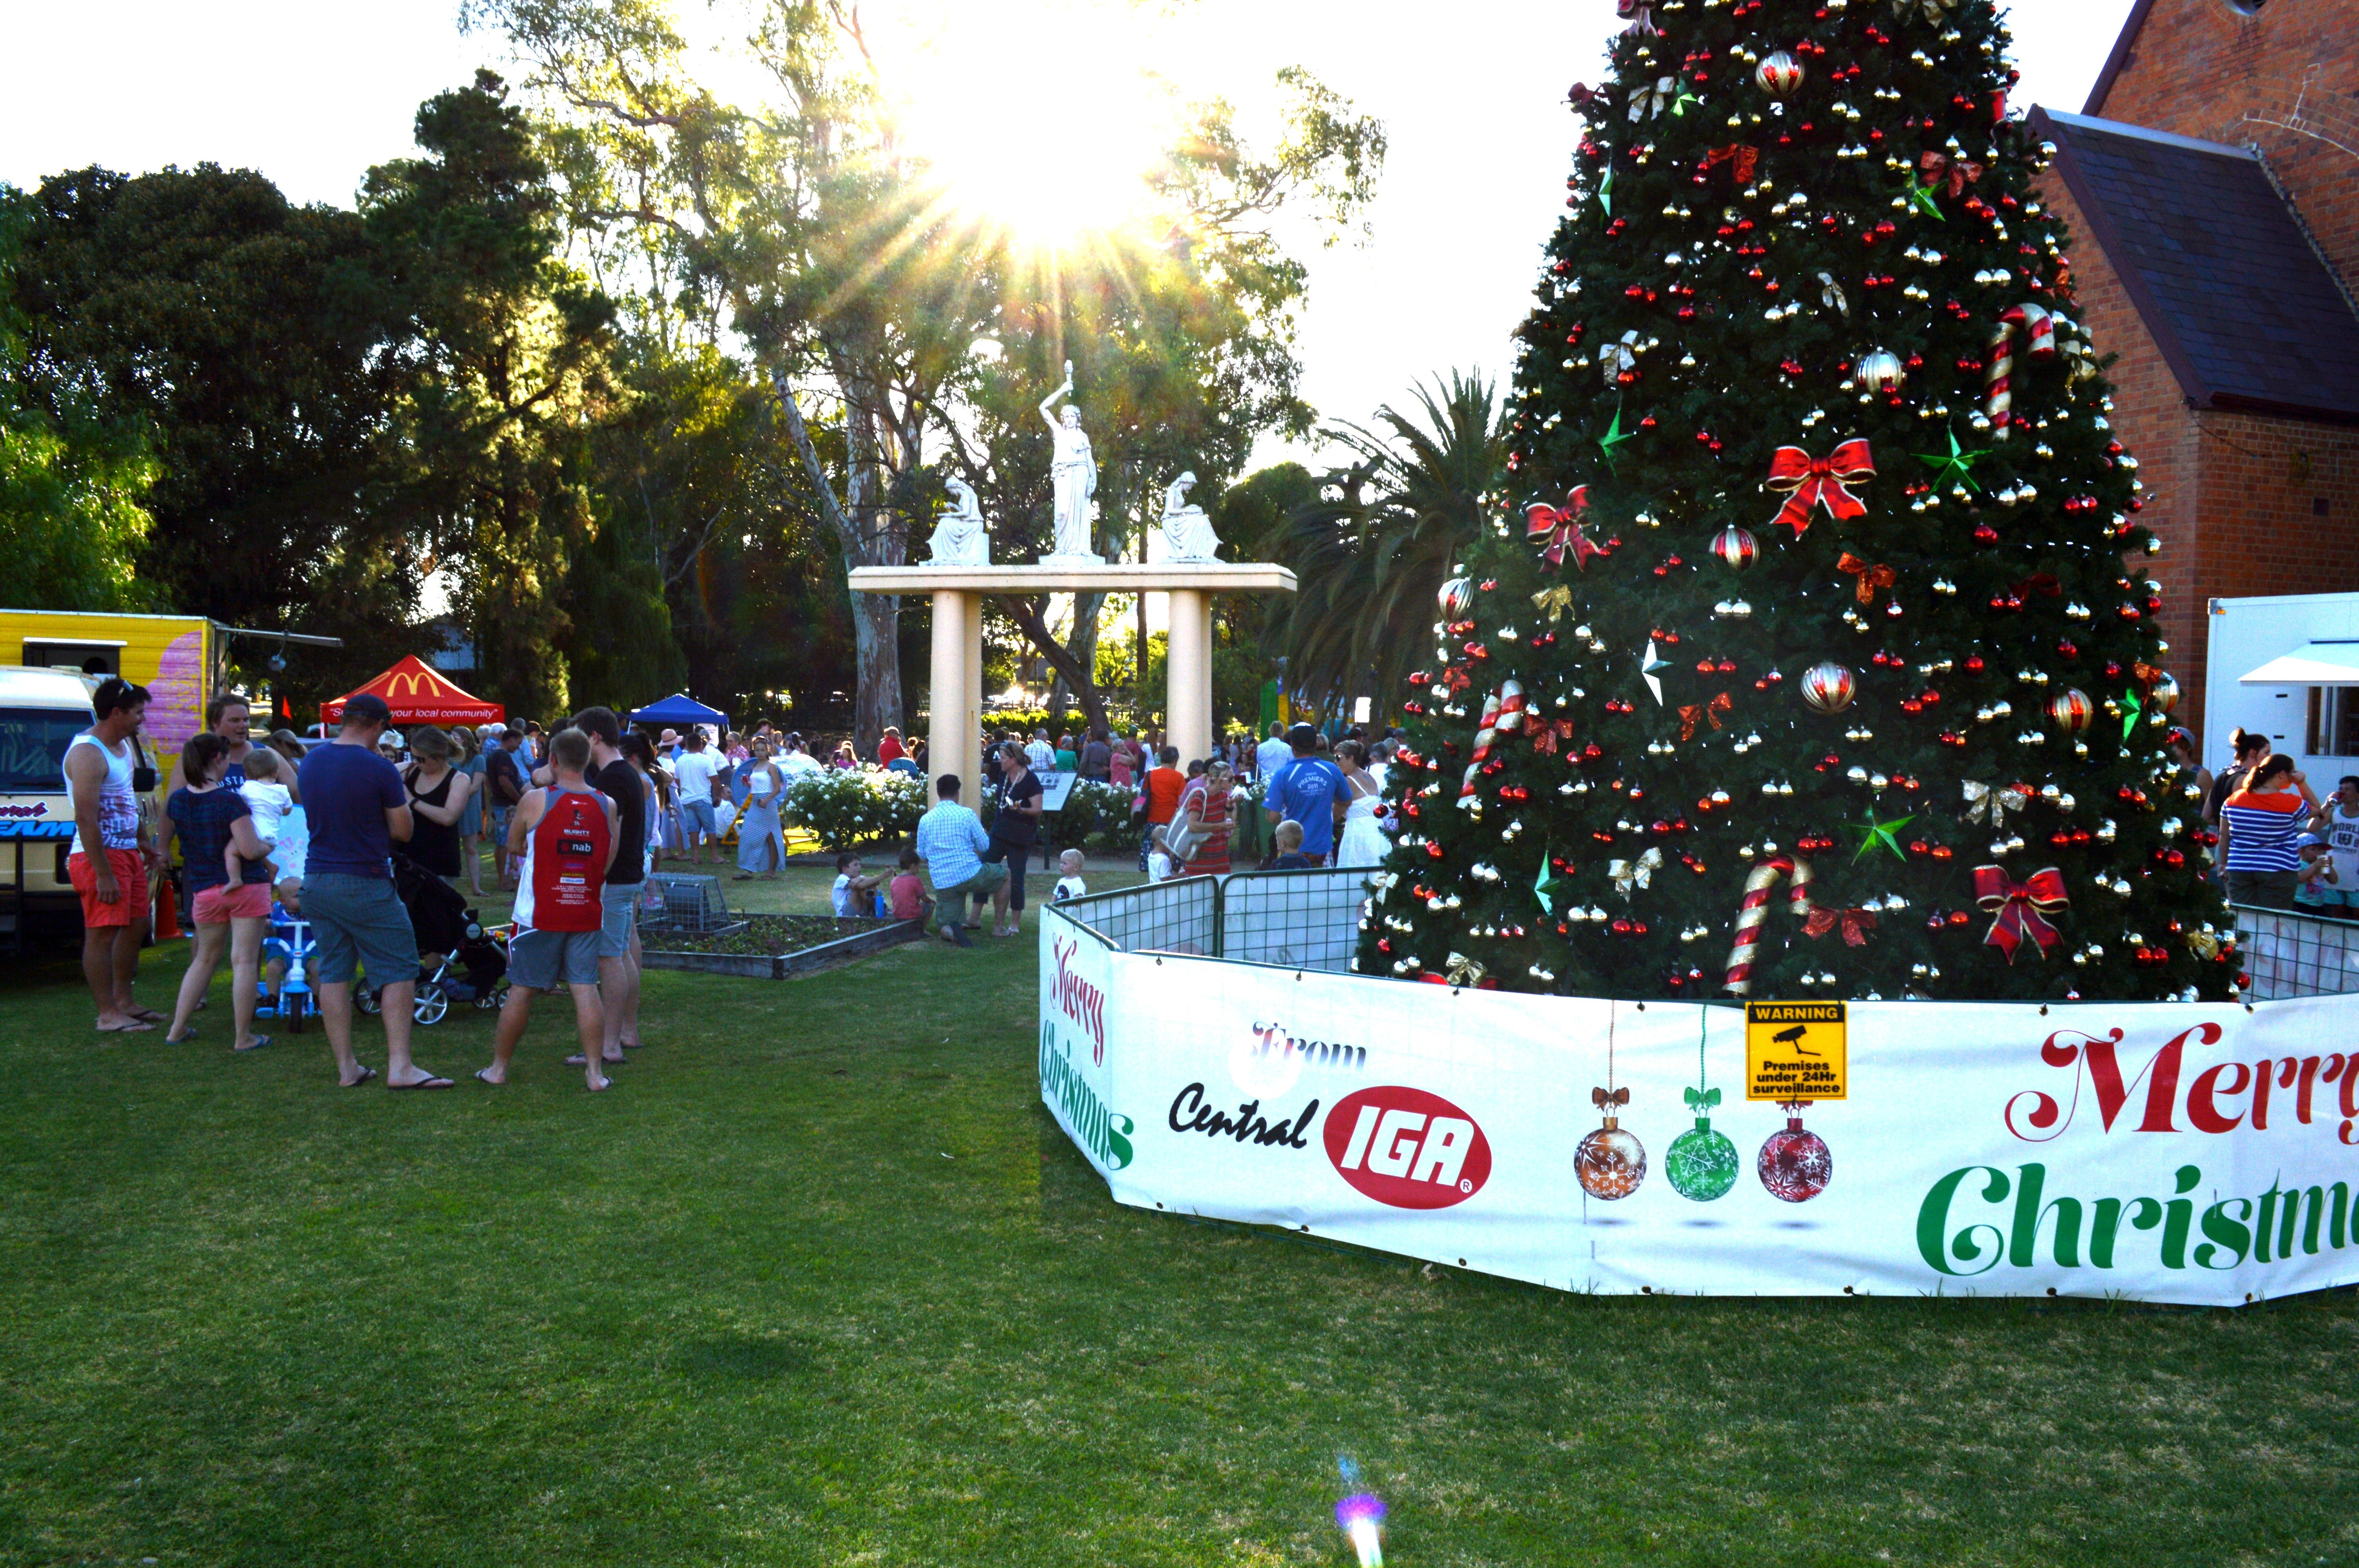 Community Christmas Party and Carols by Candlelight - Accommodation Tasmania